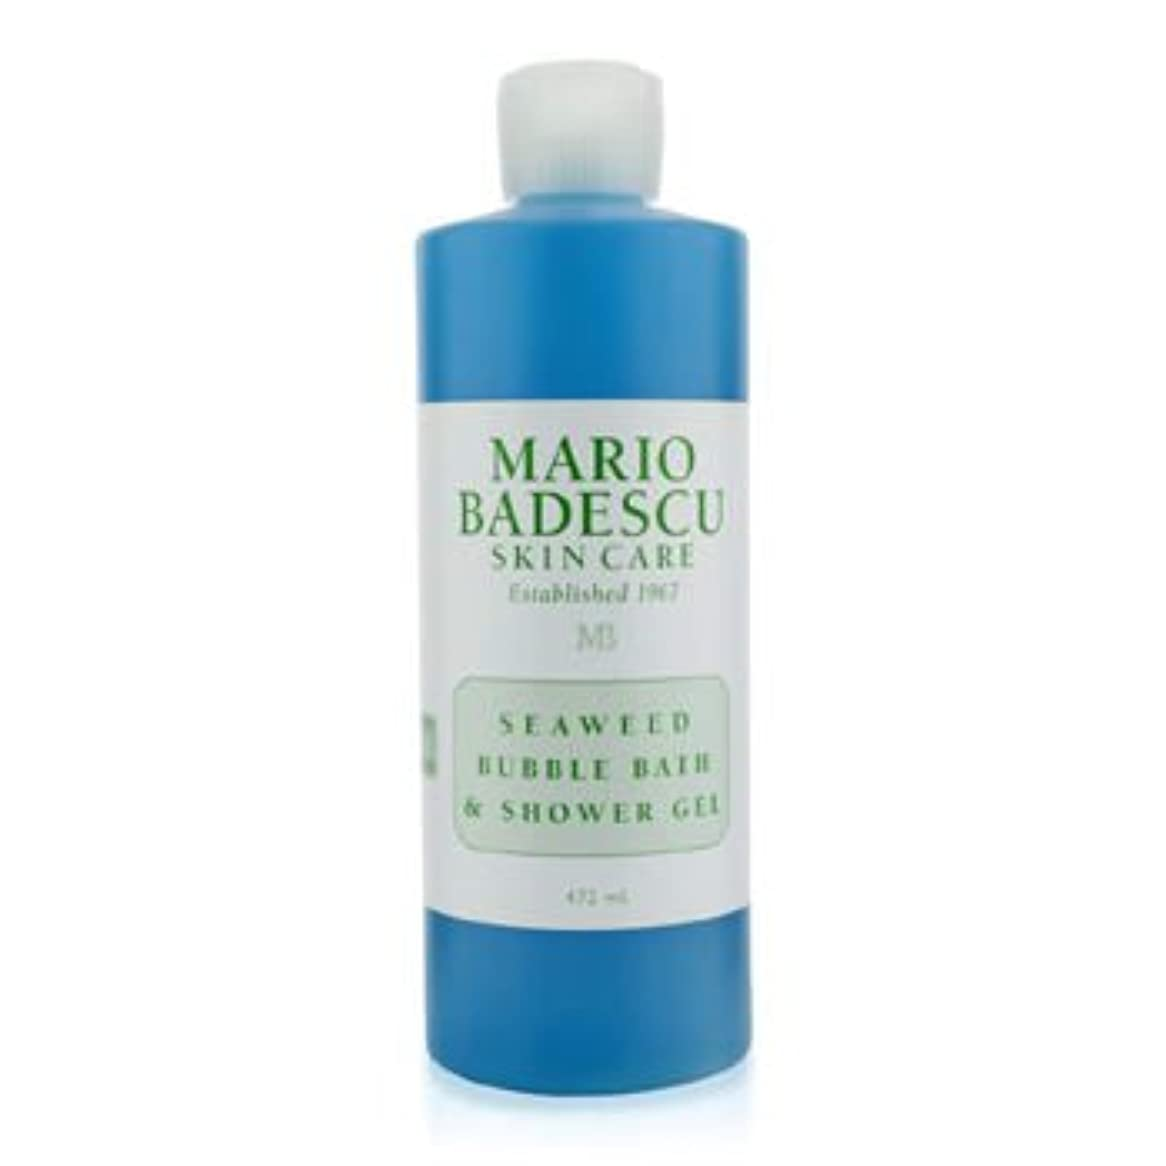 しょっぱい証明する栄光[Mario Badescu] Seaweed Bubble Bath & Shower Gel 472ml/16oz